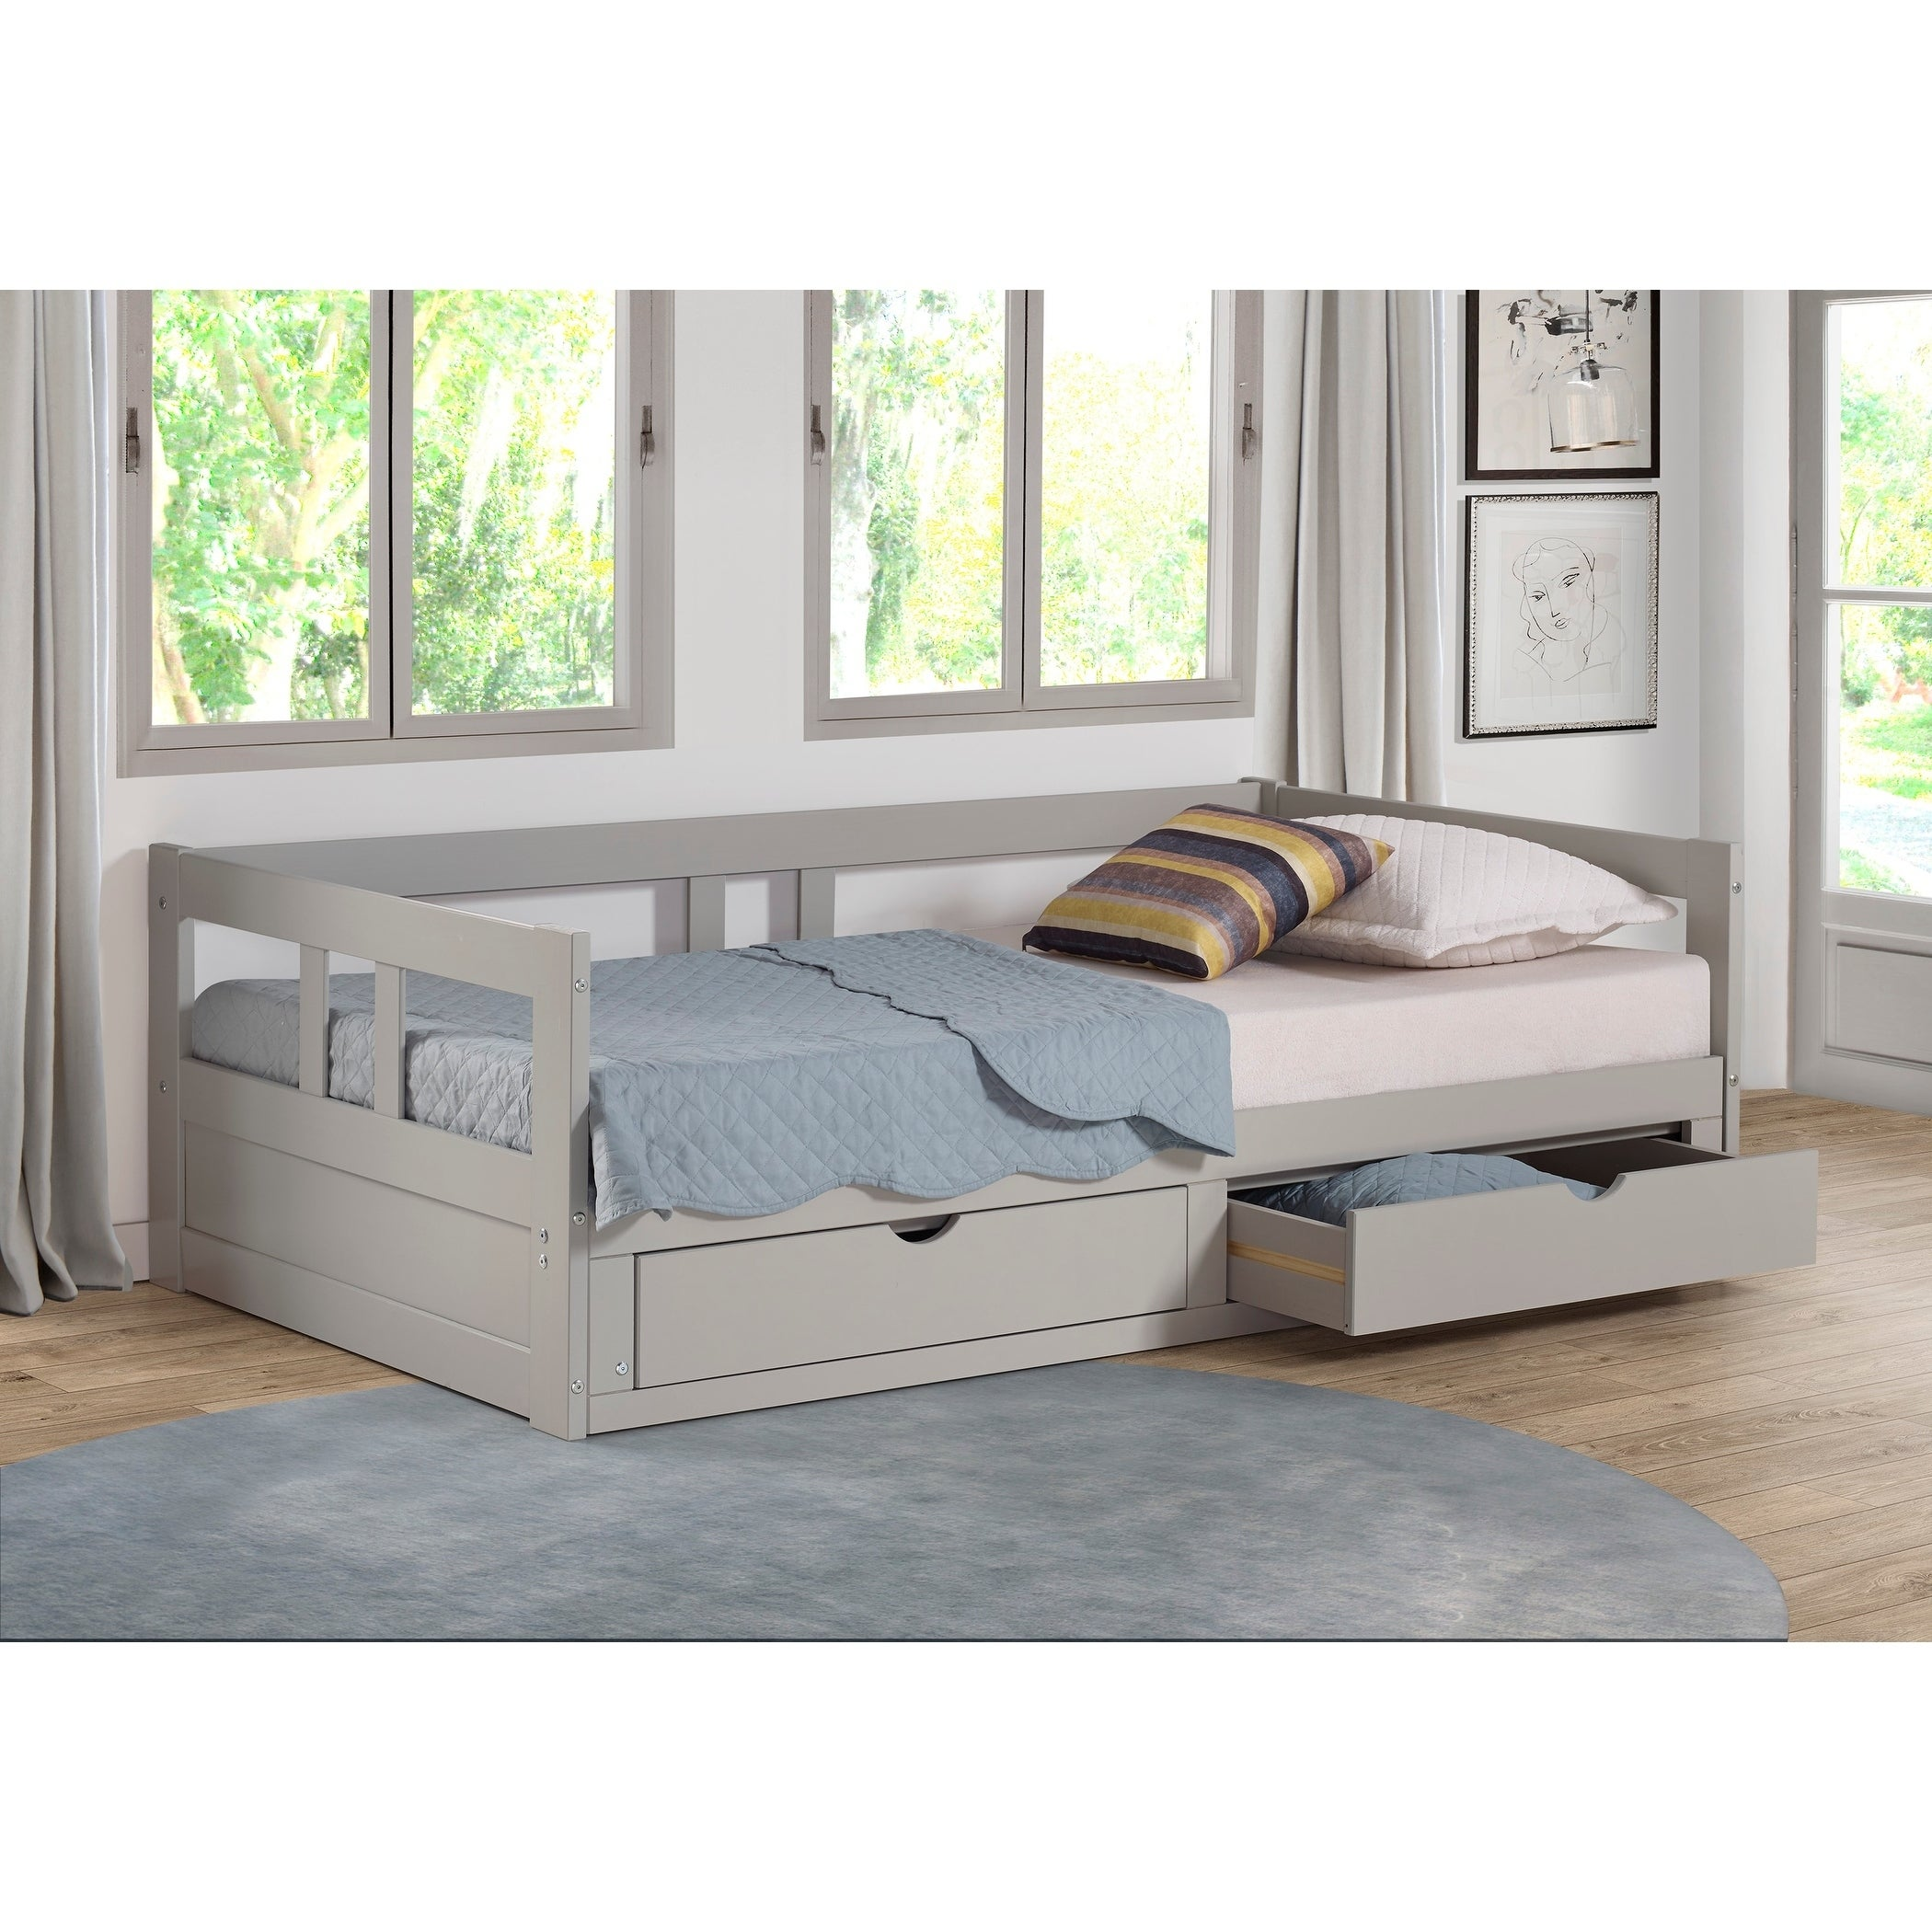 Shop Melody Expandable Twin to King Trundle Daybed with Storage ...